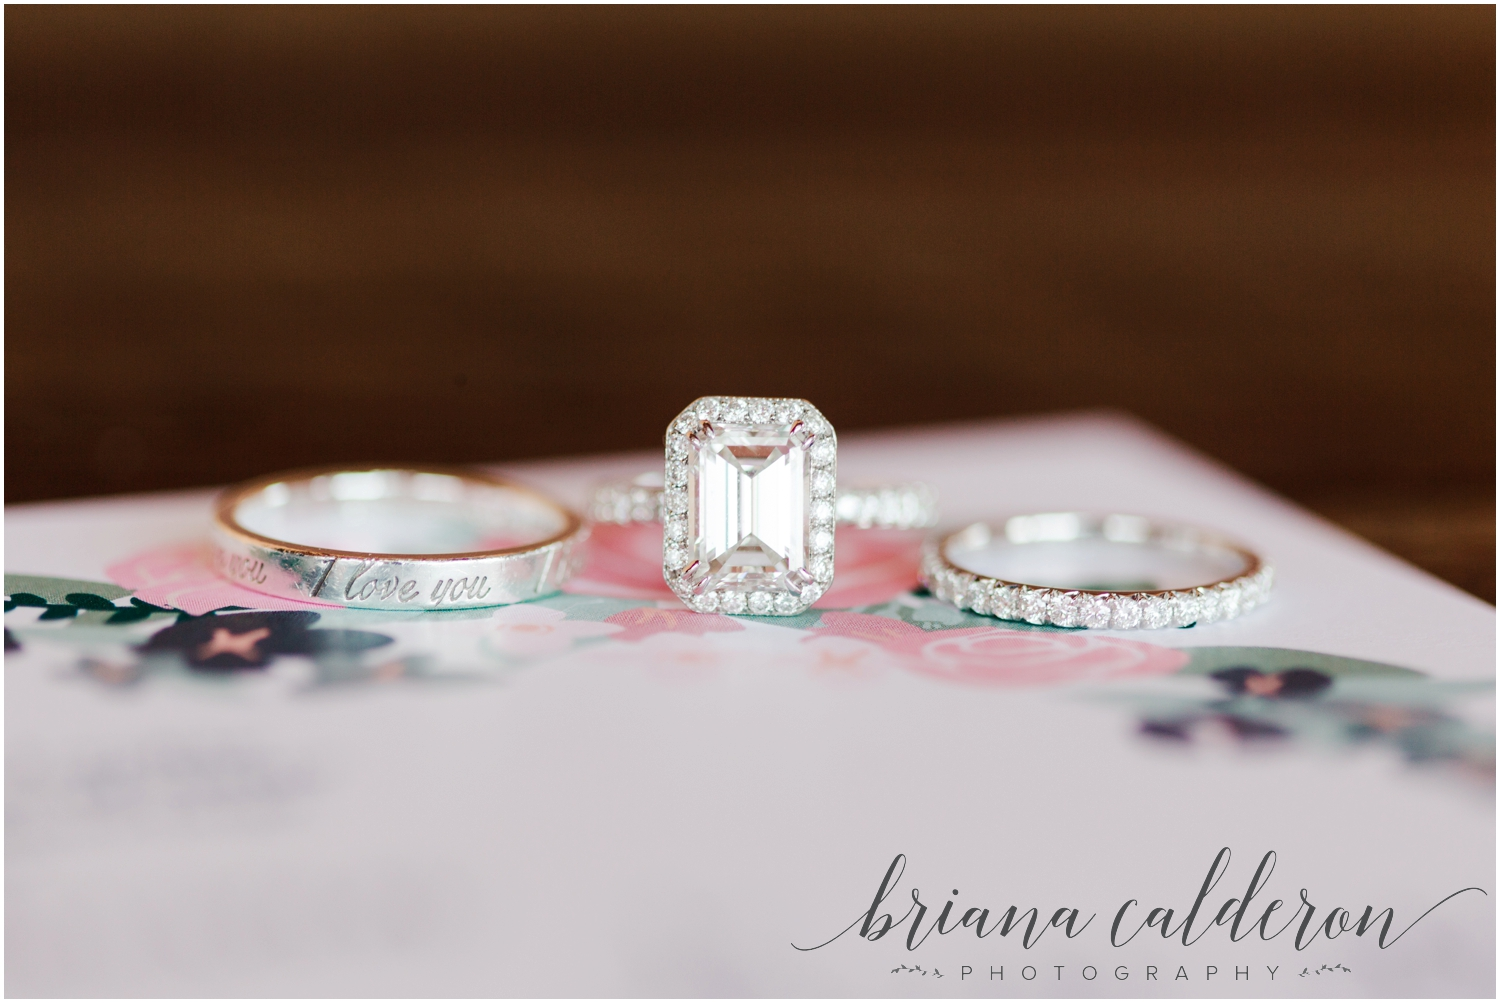 Regale Winery Wedding photos by Briana Calderon Photography_0641.jpg